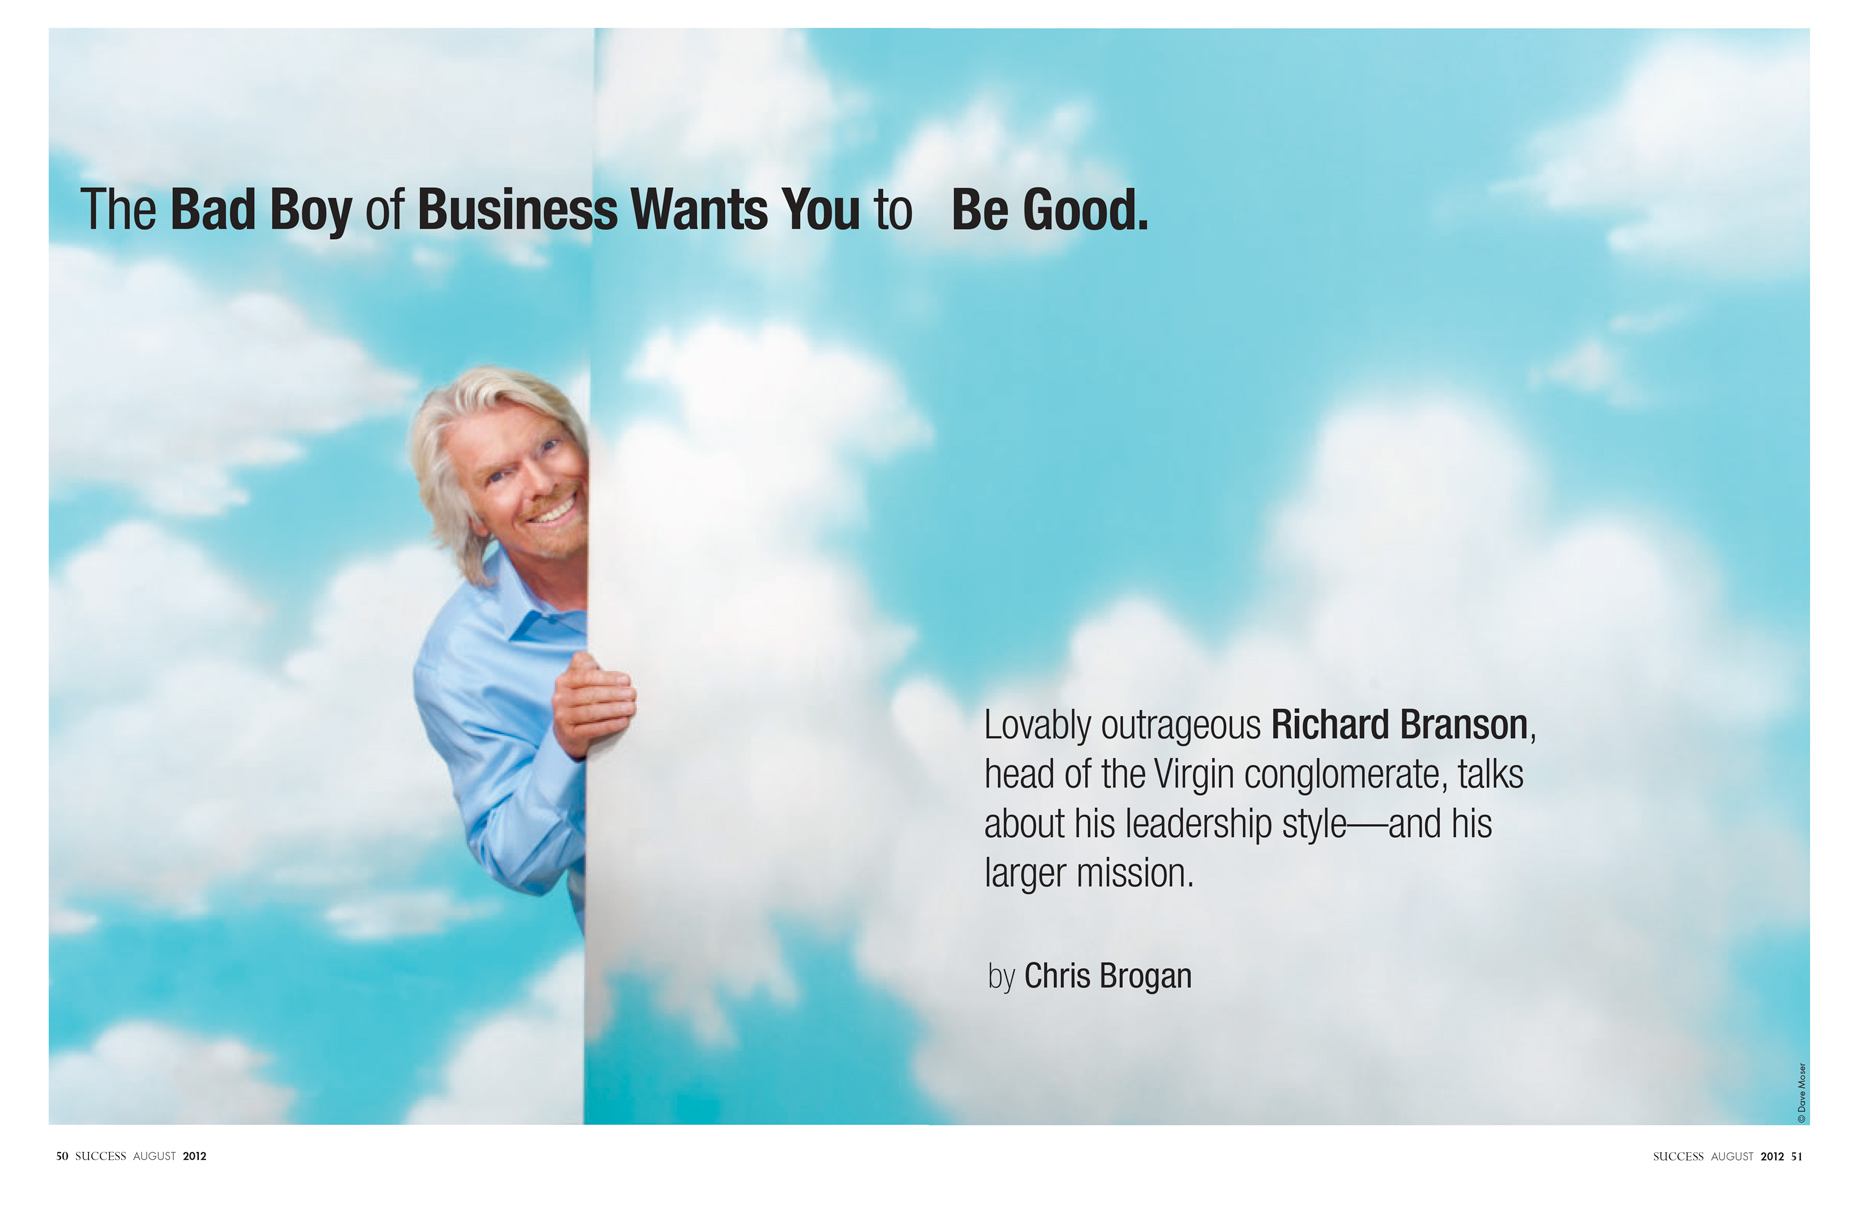 Richard Branson | Virgin Group | SUCCESS editorial